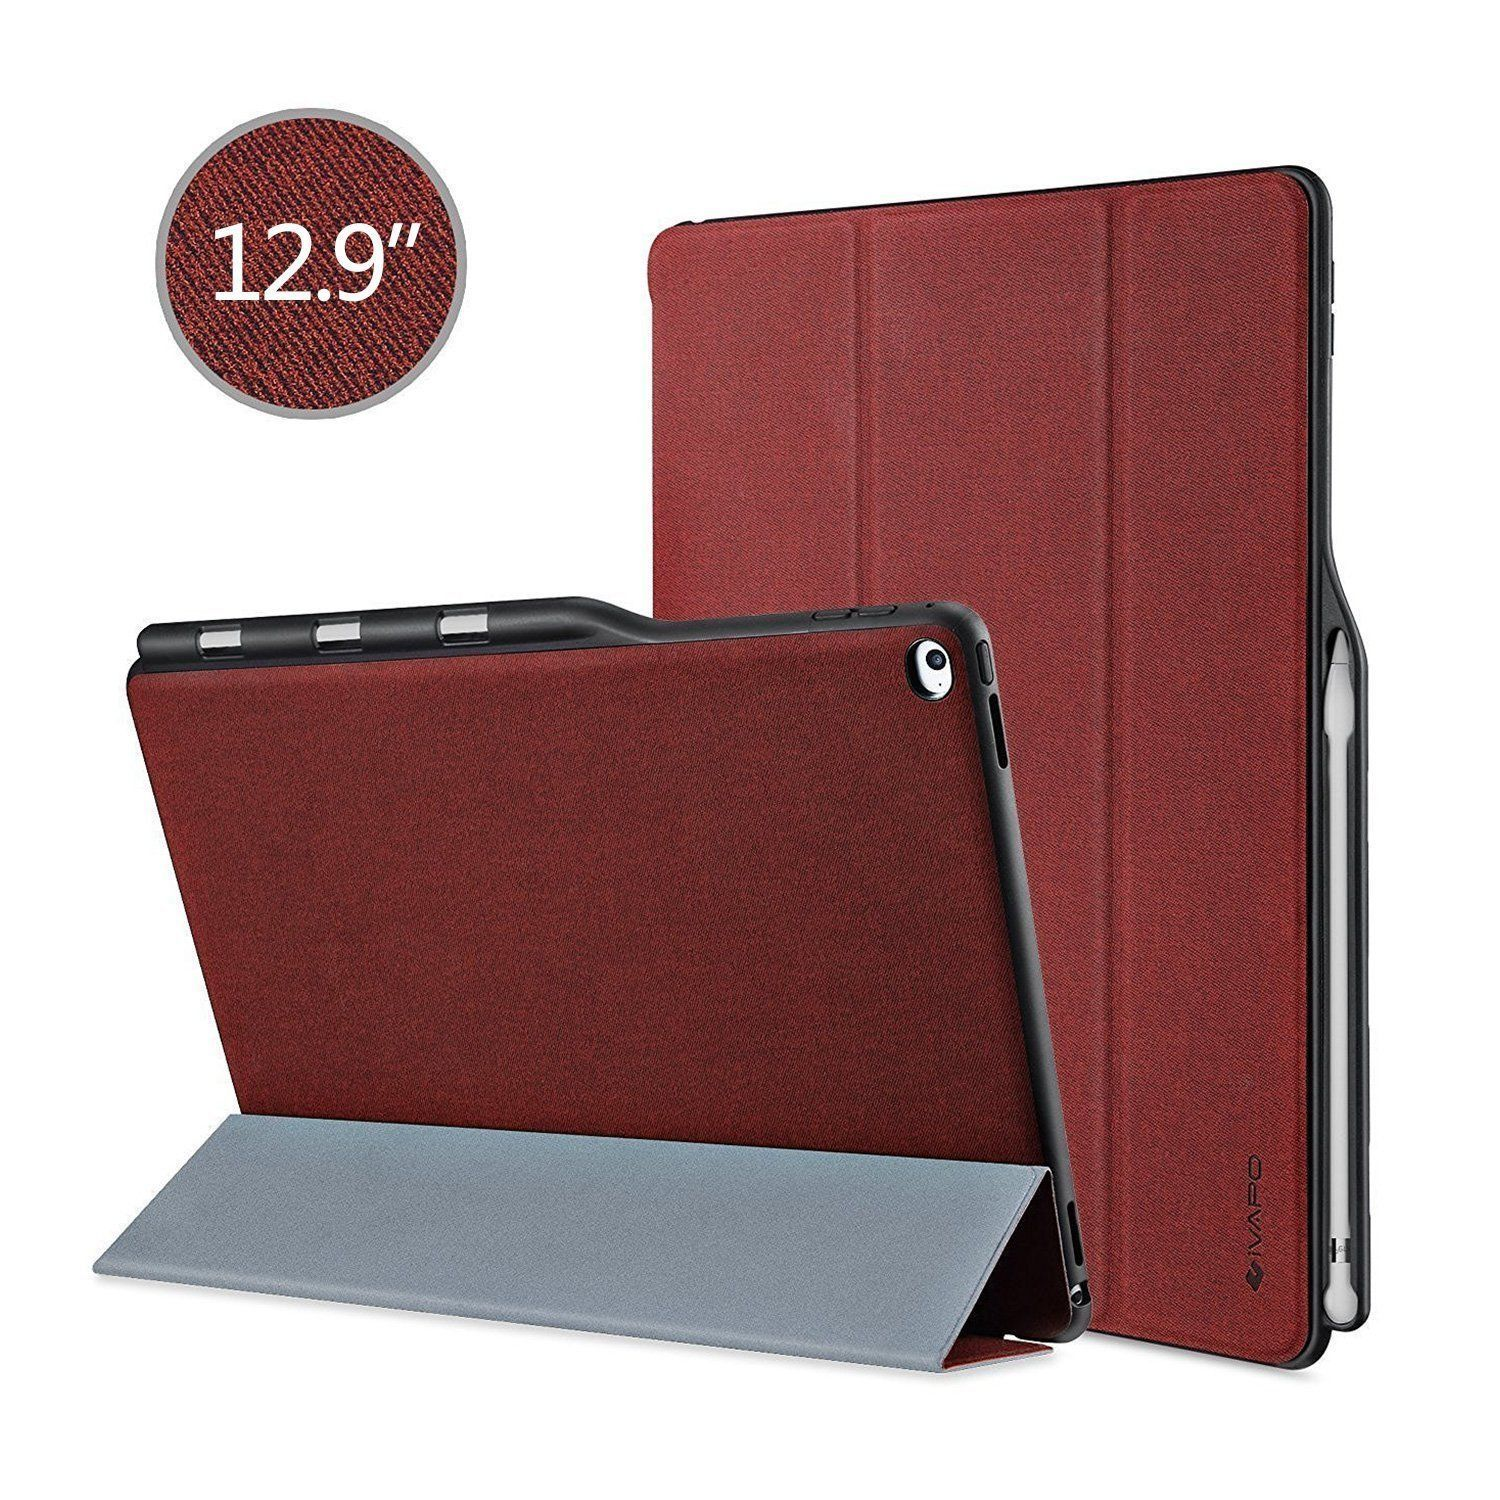 Ipad Pro 9.7 Case With Pencil Holder Fair Burgundy Red New Cell Phone Case Holder Accessories For Apple Ipad Decorating Design